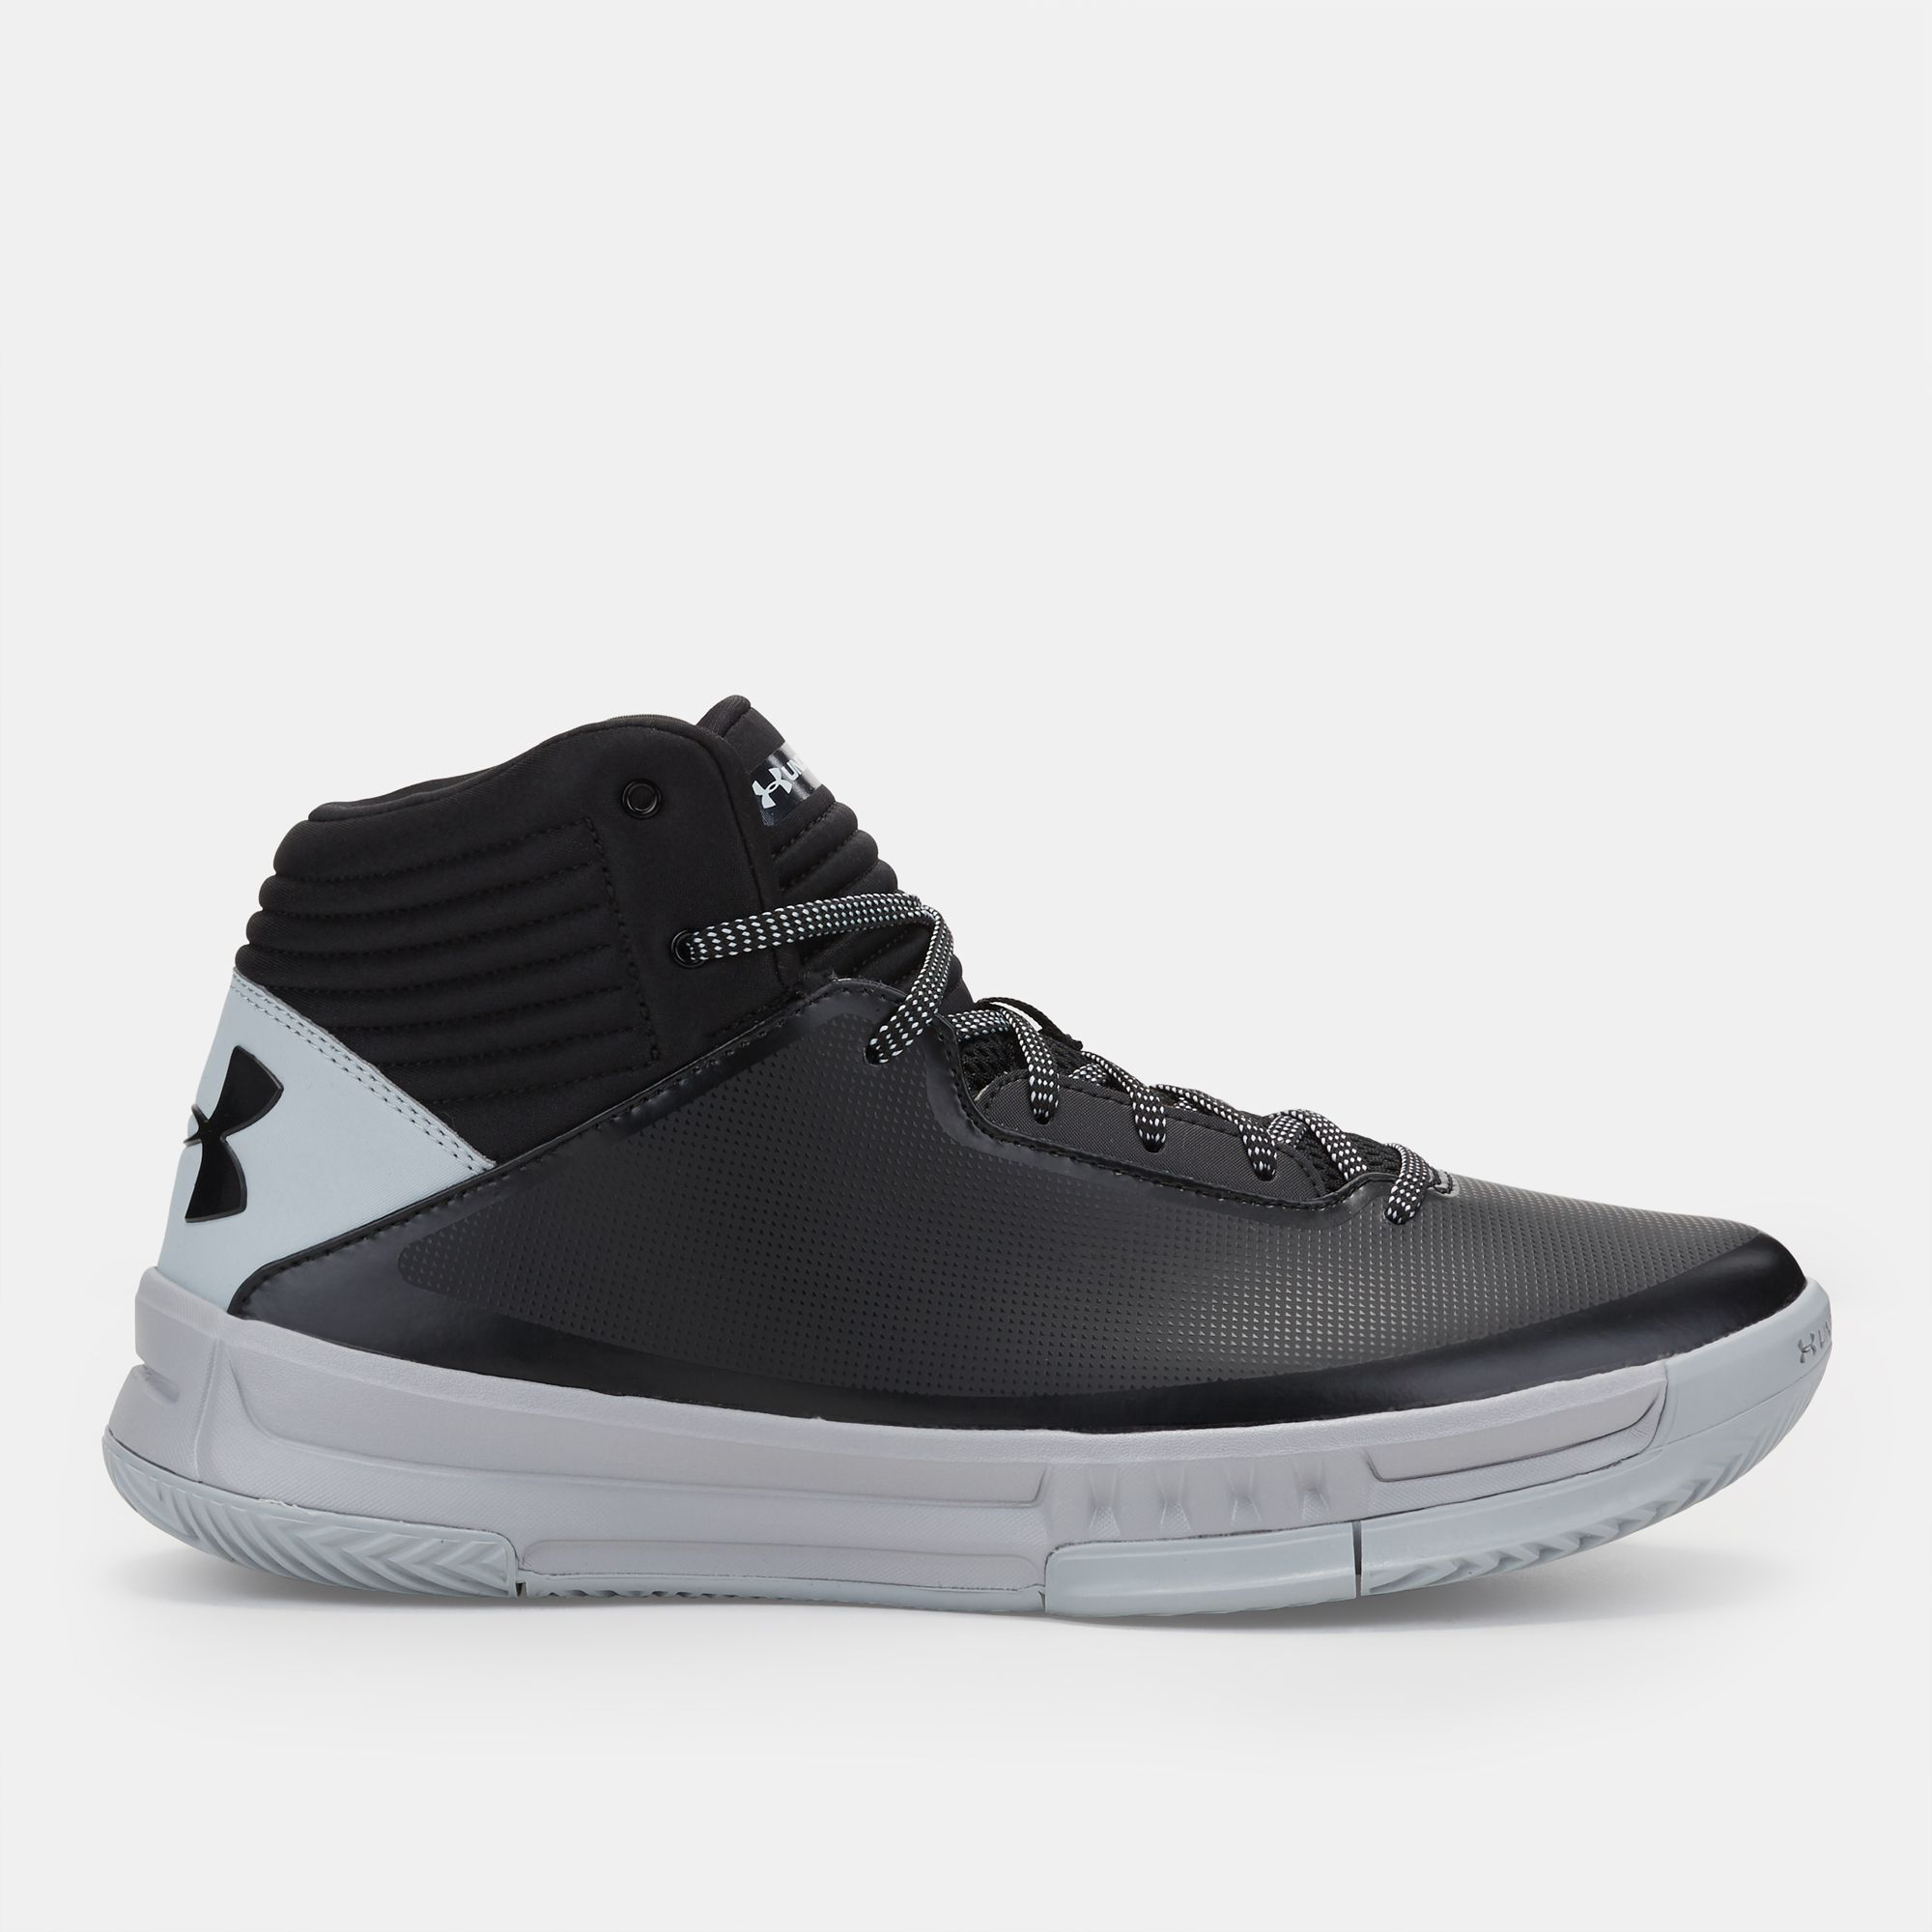 adcb697c5a7a Under Armour Lockdown 2 Basketball Shoe Uaft 1303265 003 in Kuwait